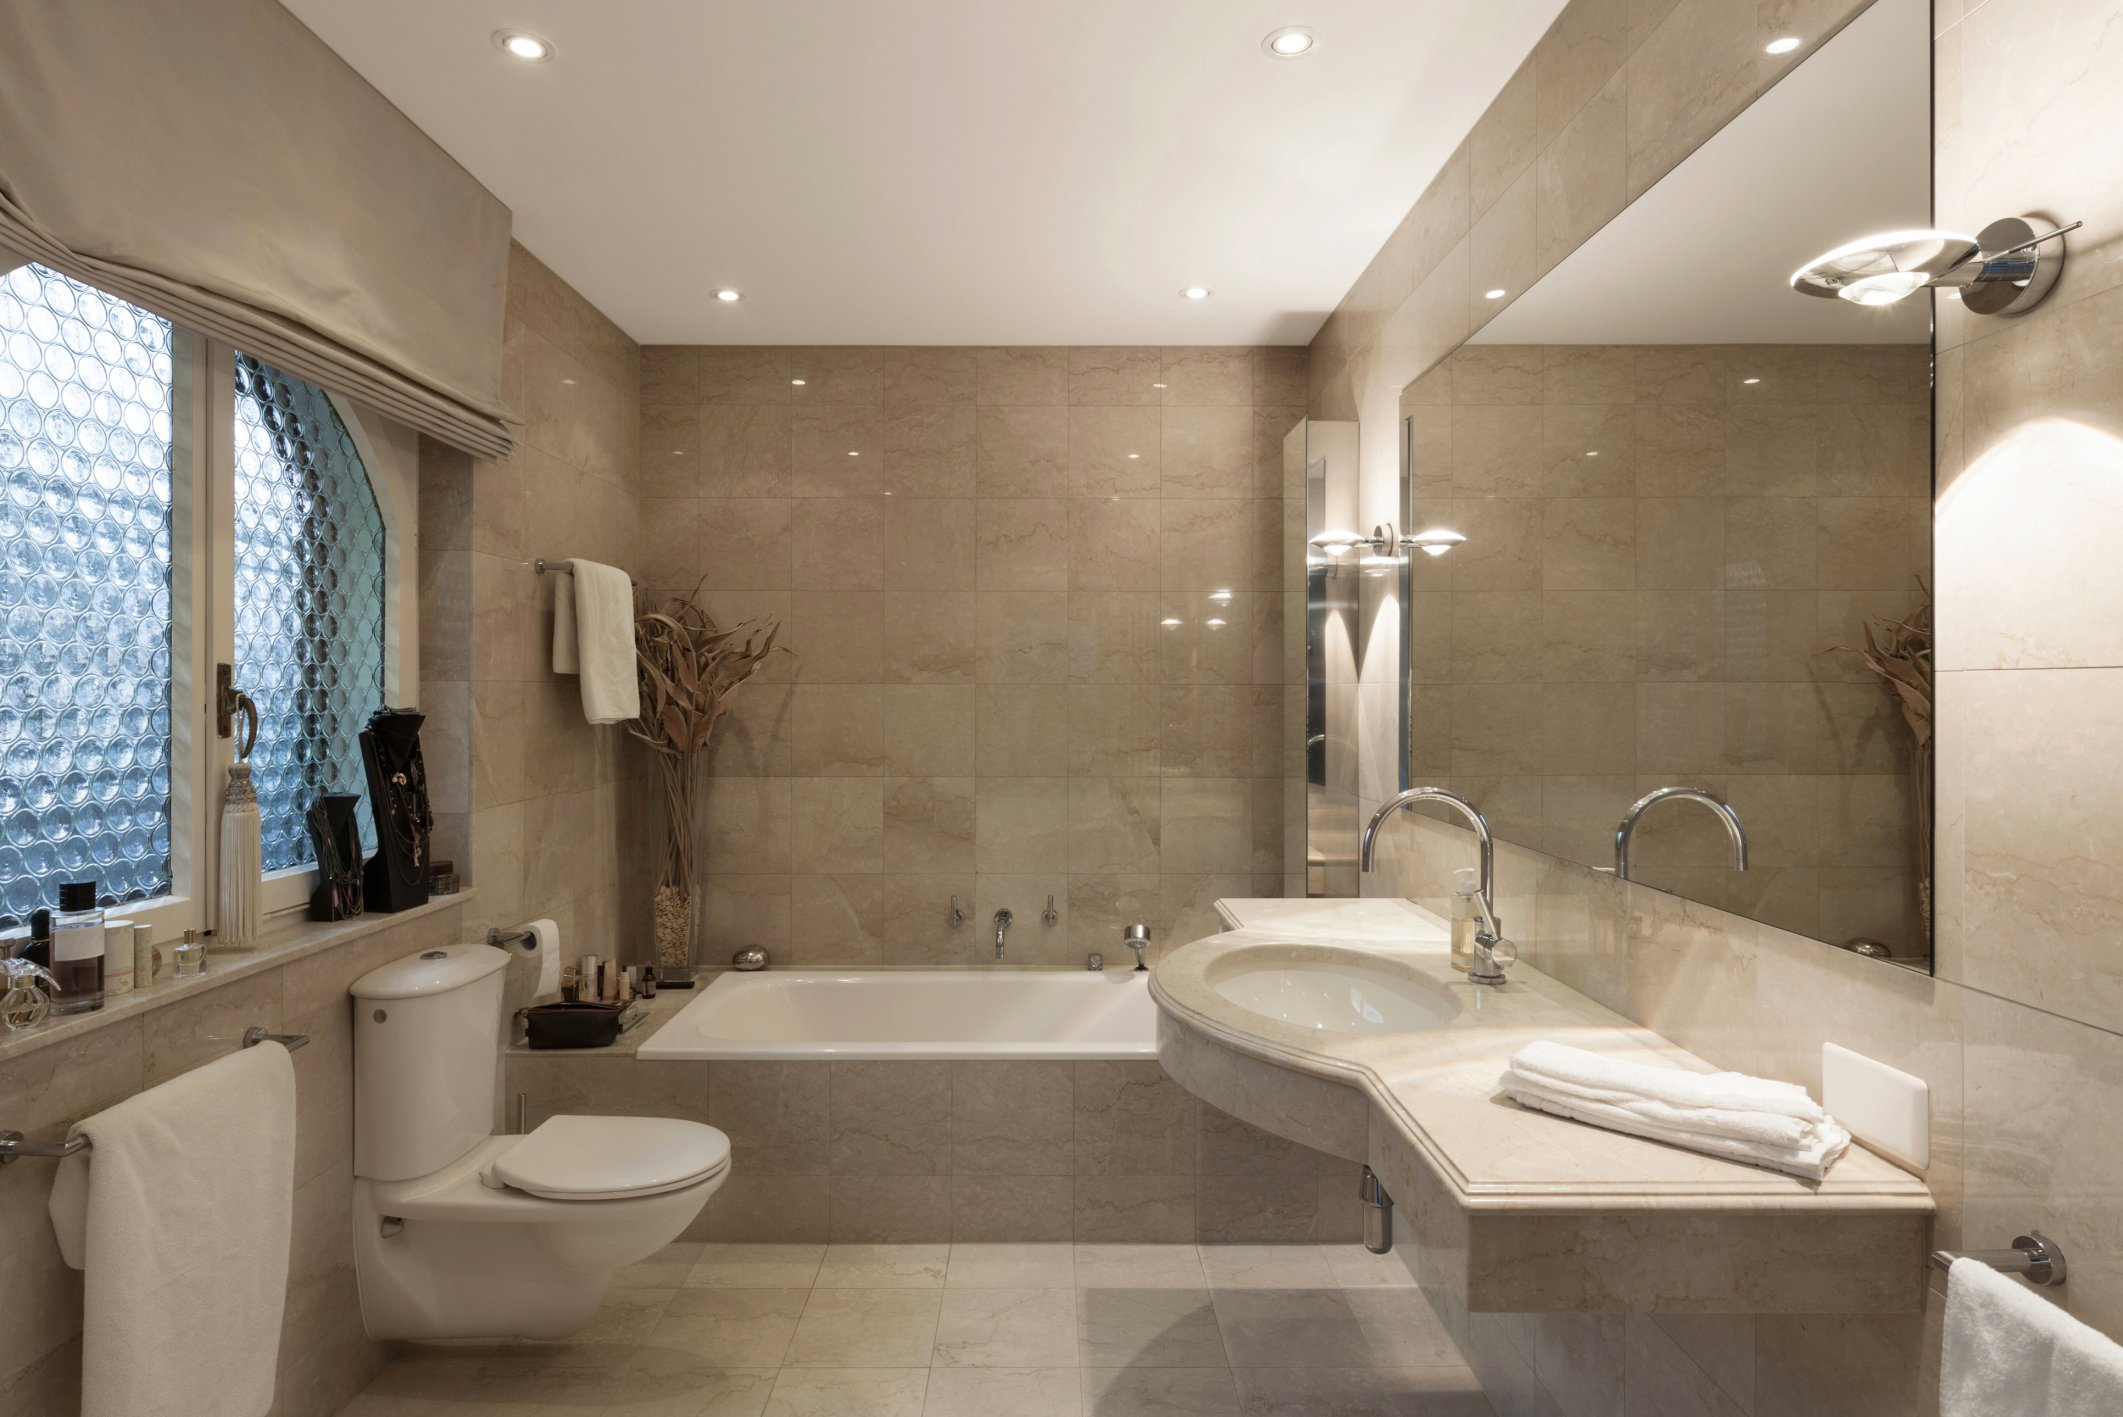 Bathroom Remodeling Nashville Tn Beautiful Bathroom Renovation - Bathroom remodel nashville tn